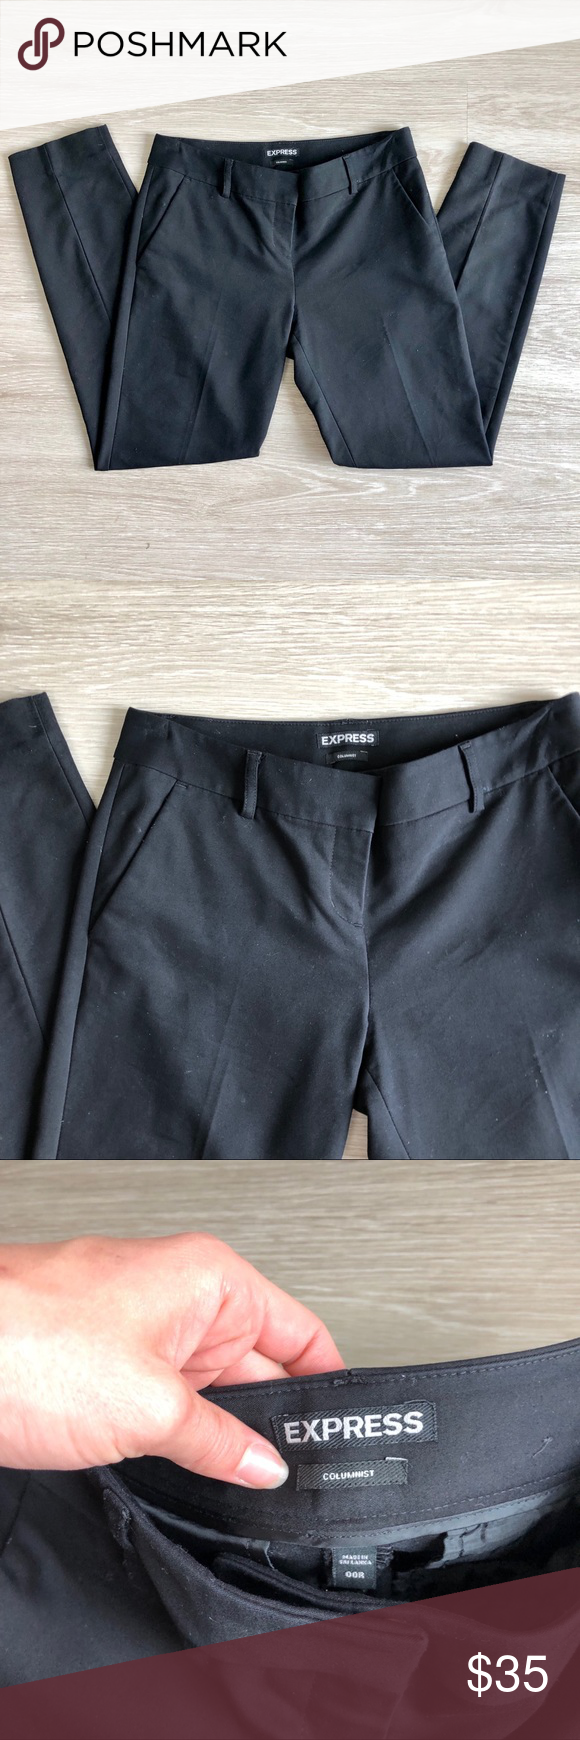 Express | Black Low-Rise Columnist Ankle Pant In excellent, preowned condition! Express | Black Low-Rise Columnist Ankle Pant. Size 00R. These pants are the perfect staple for your work wardrobe.  Material: 49% polyester, 47% cotton, 4% elastane. Style: 07459410.  Accepting all reasonable offers! Love more than one item in my closet? Take 20% off bundles of 2 or more items! Express Pants Ankle & Cropped